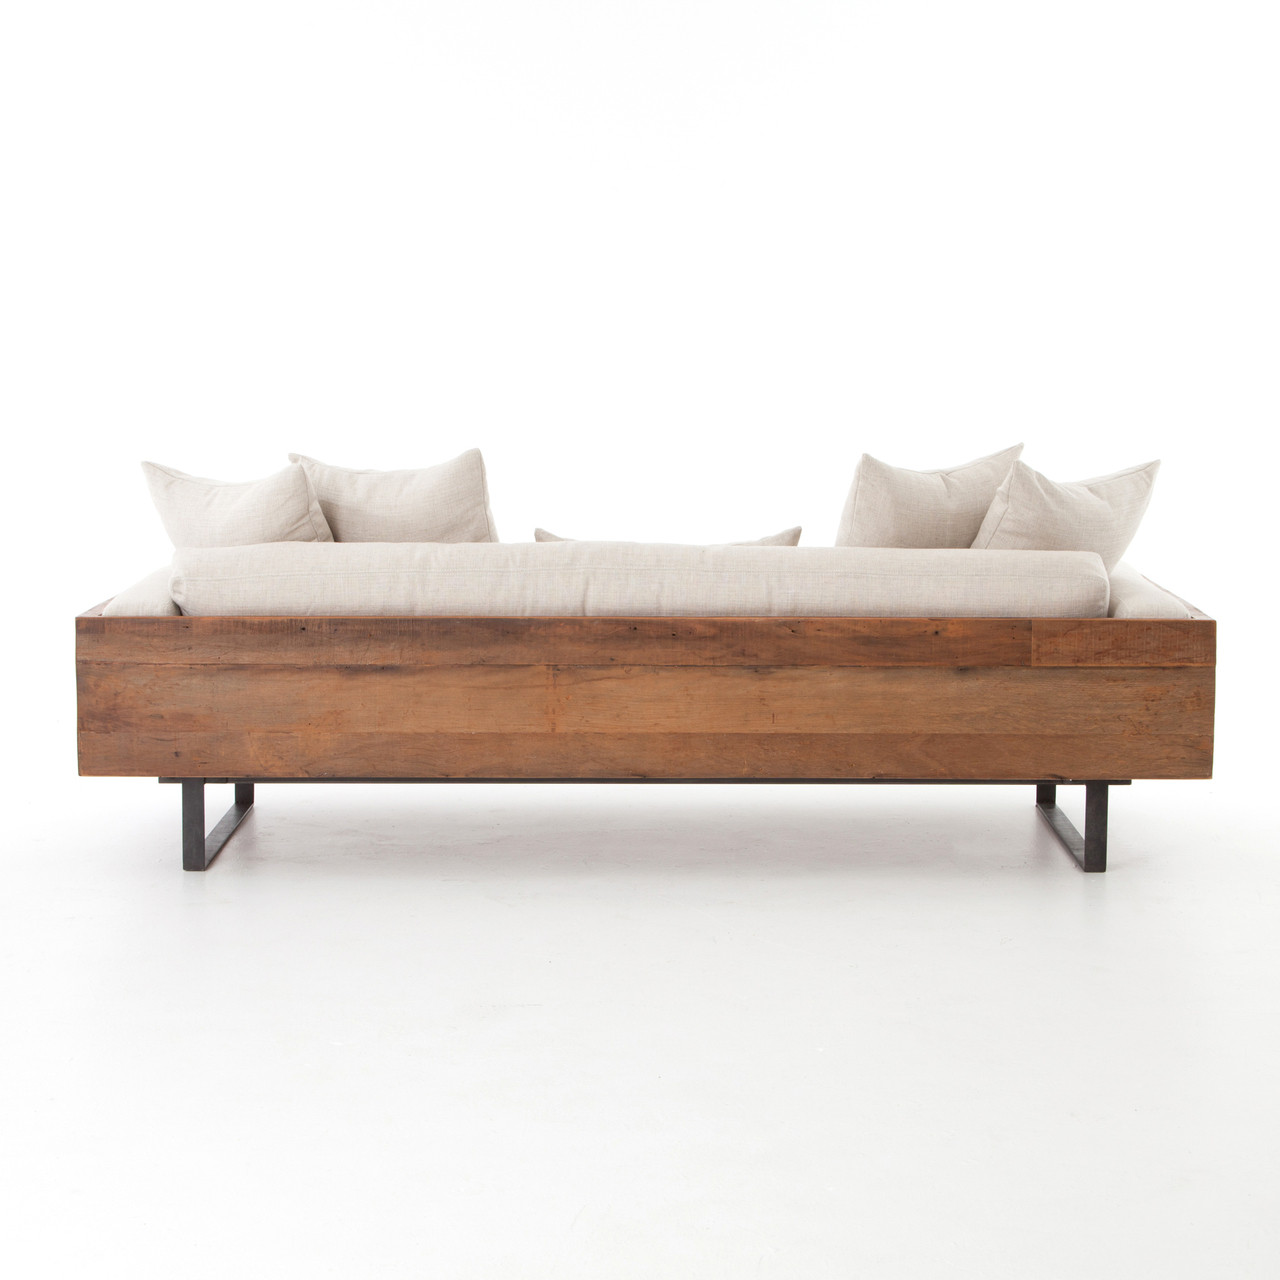 Ranger industrial loft reclaimed wood sofa zin home for Industrial couch